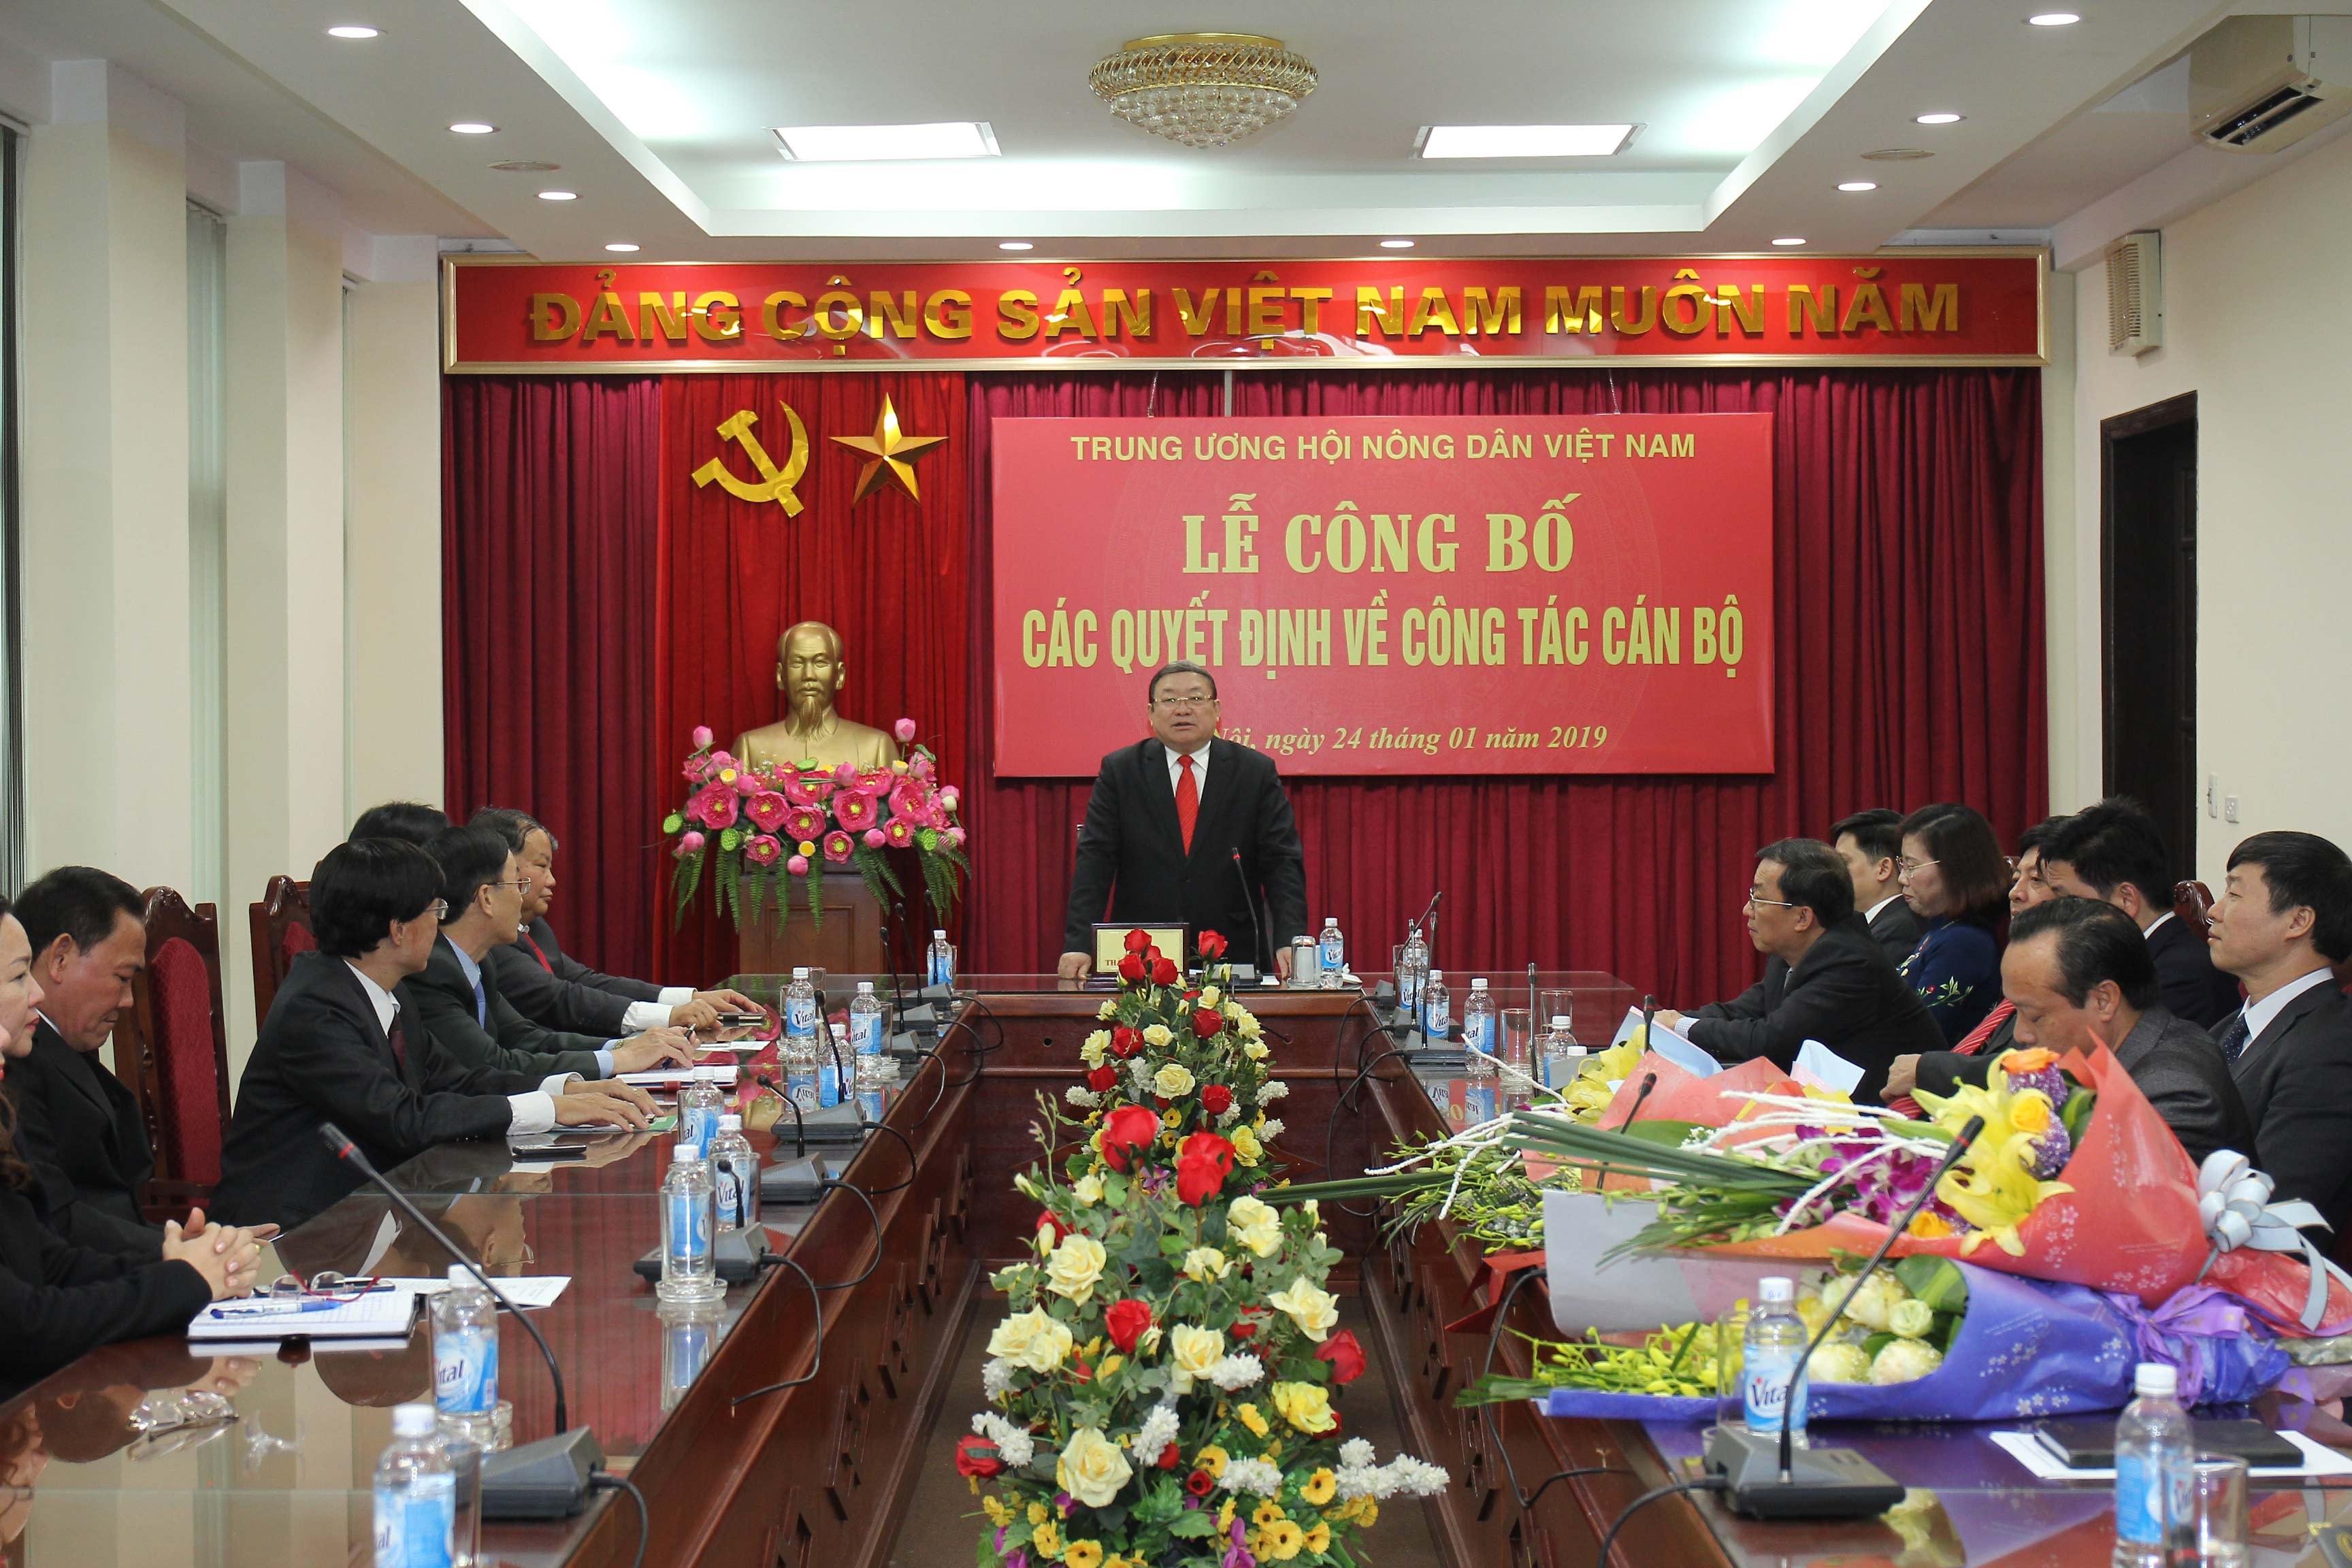 trung uong hoi ndvn: cong bo cac quyet dinh ve cong tac can bo hinh anh 1